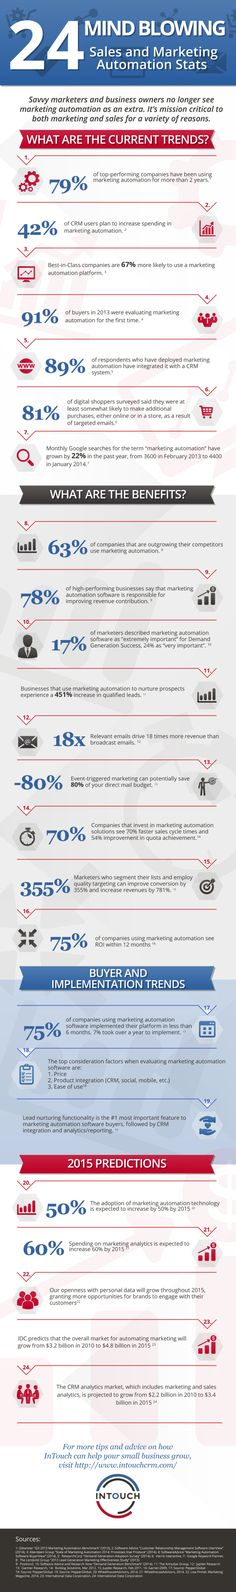 sales and marketing automation statistics and trends infographic